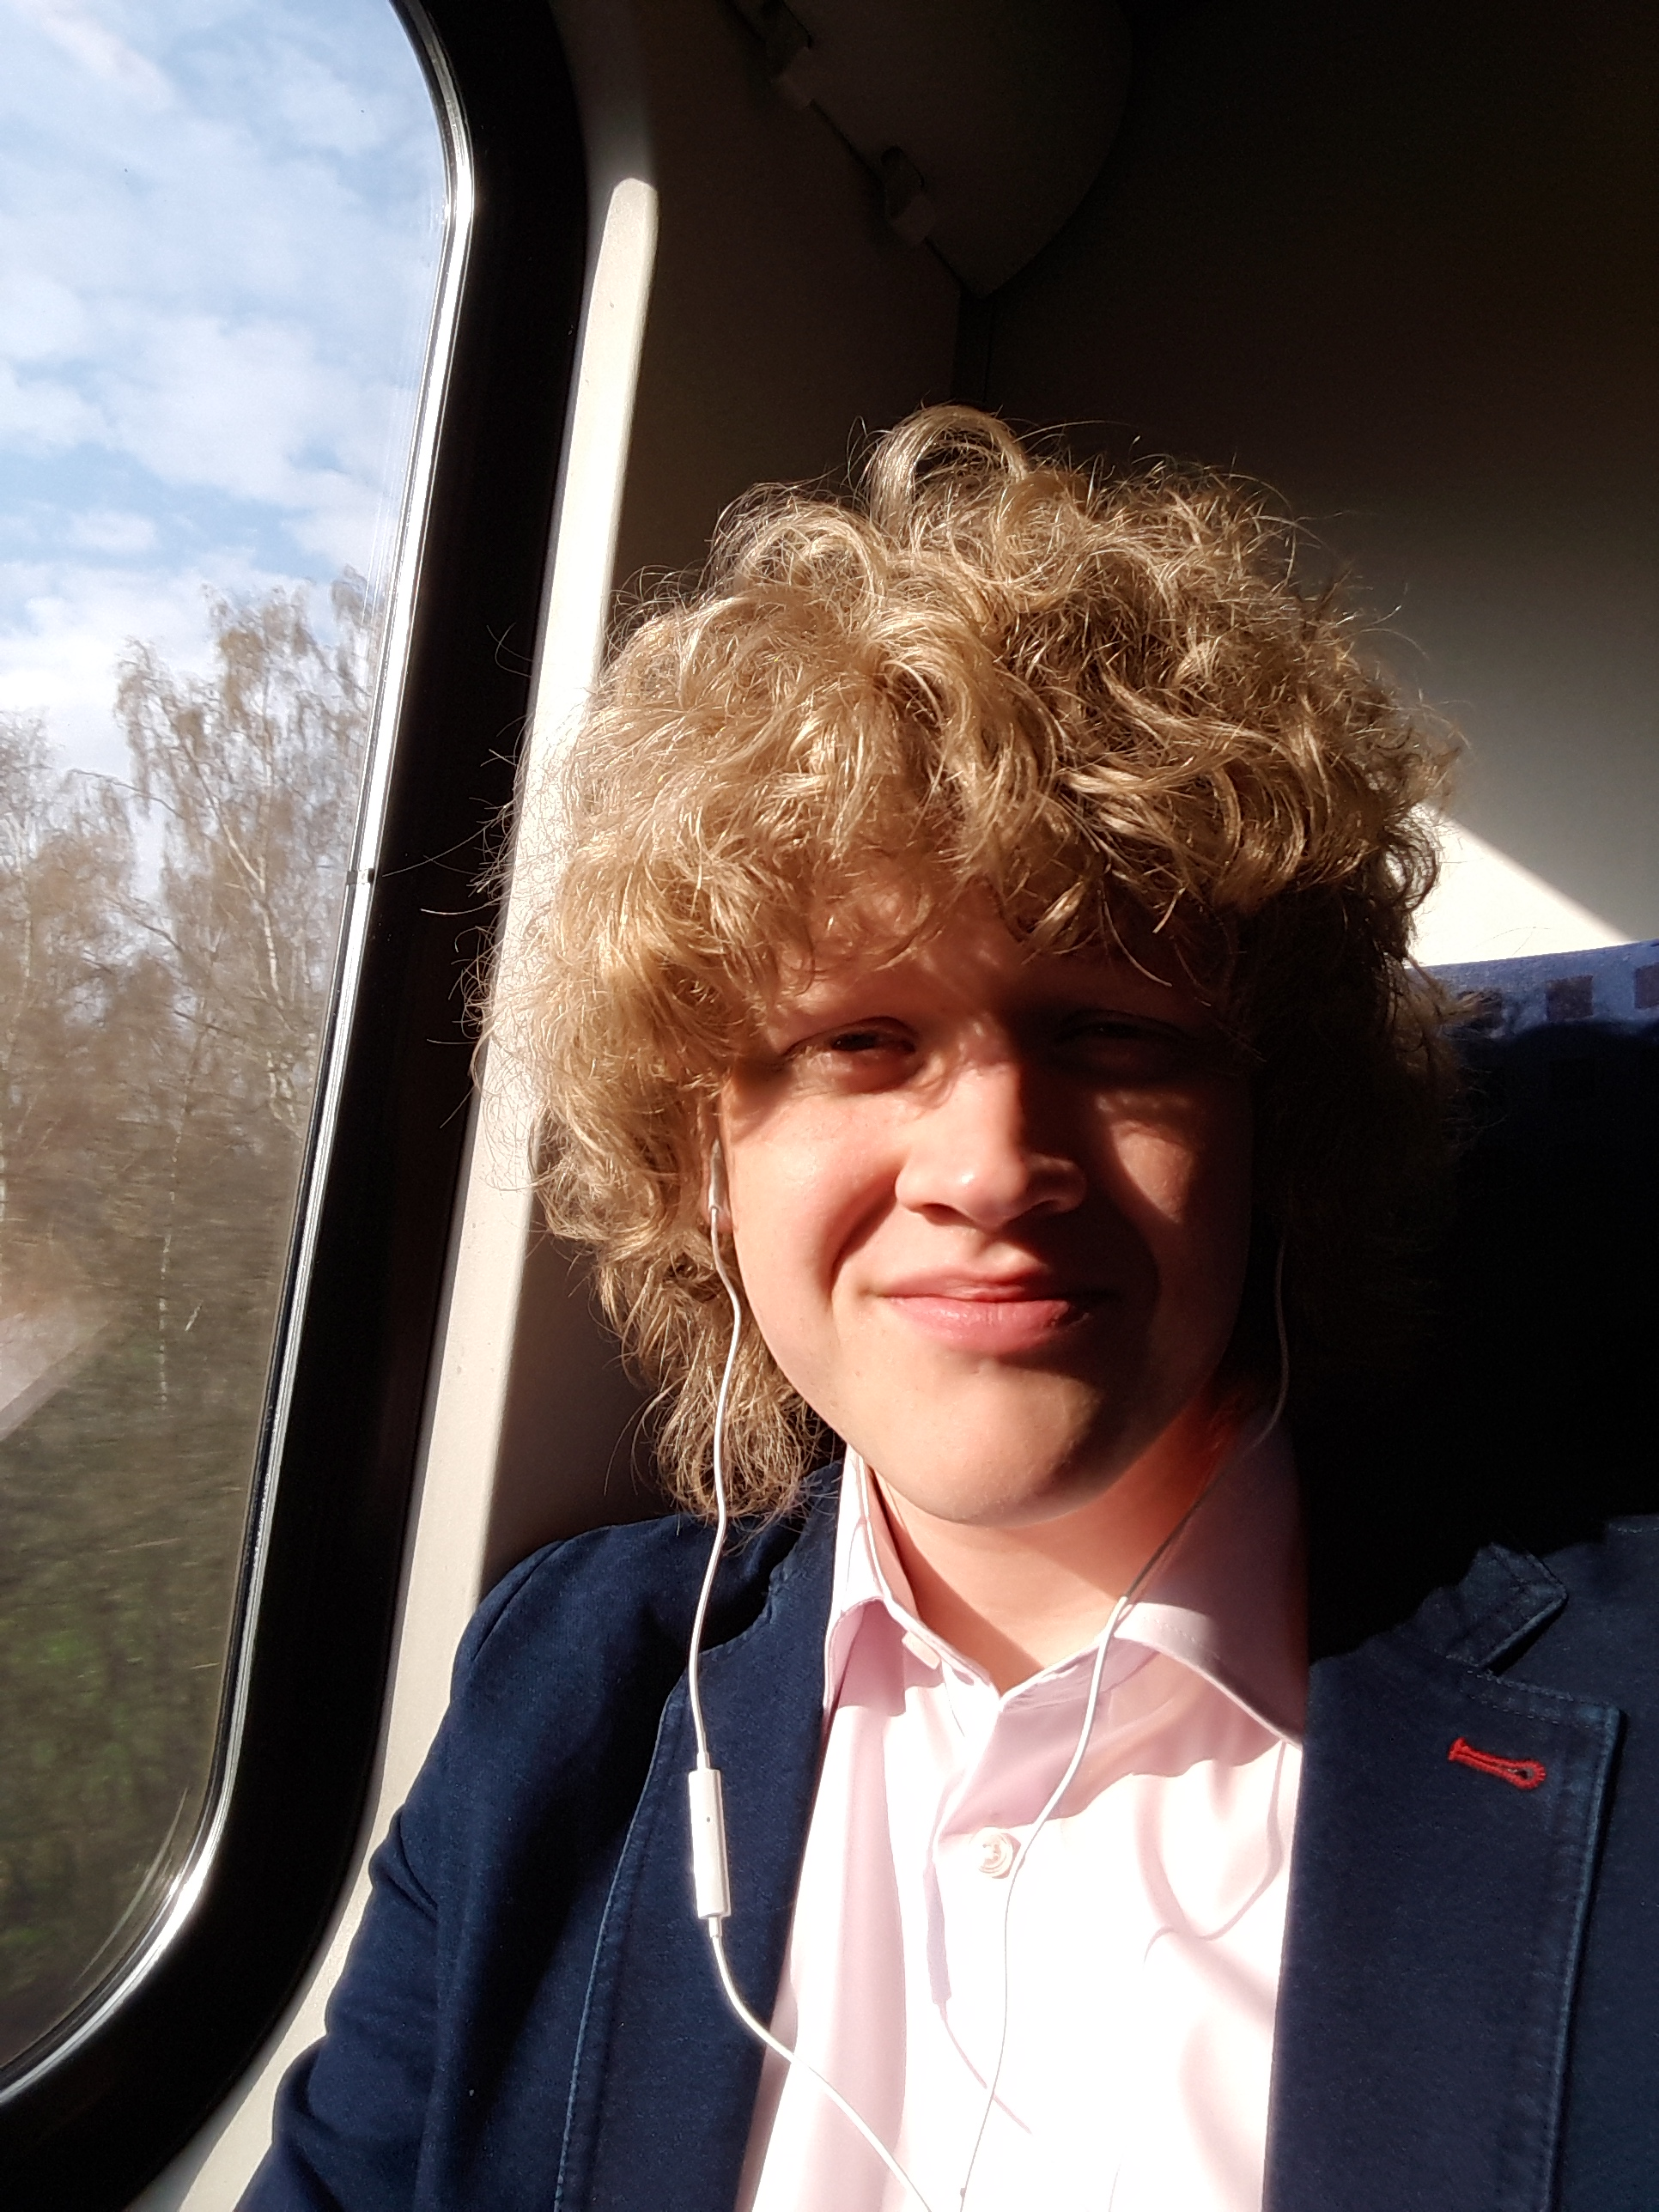 Me in the train to Frankfurt.